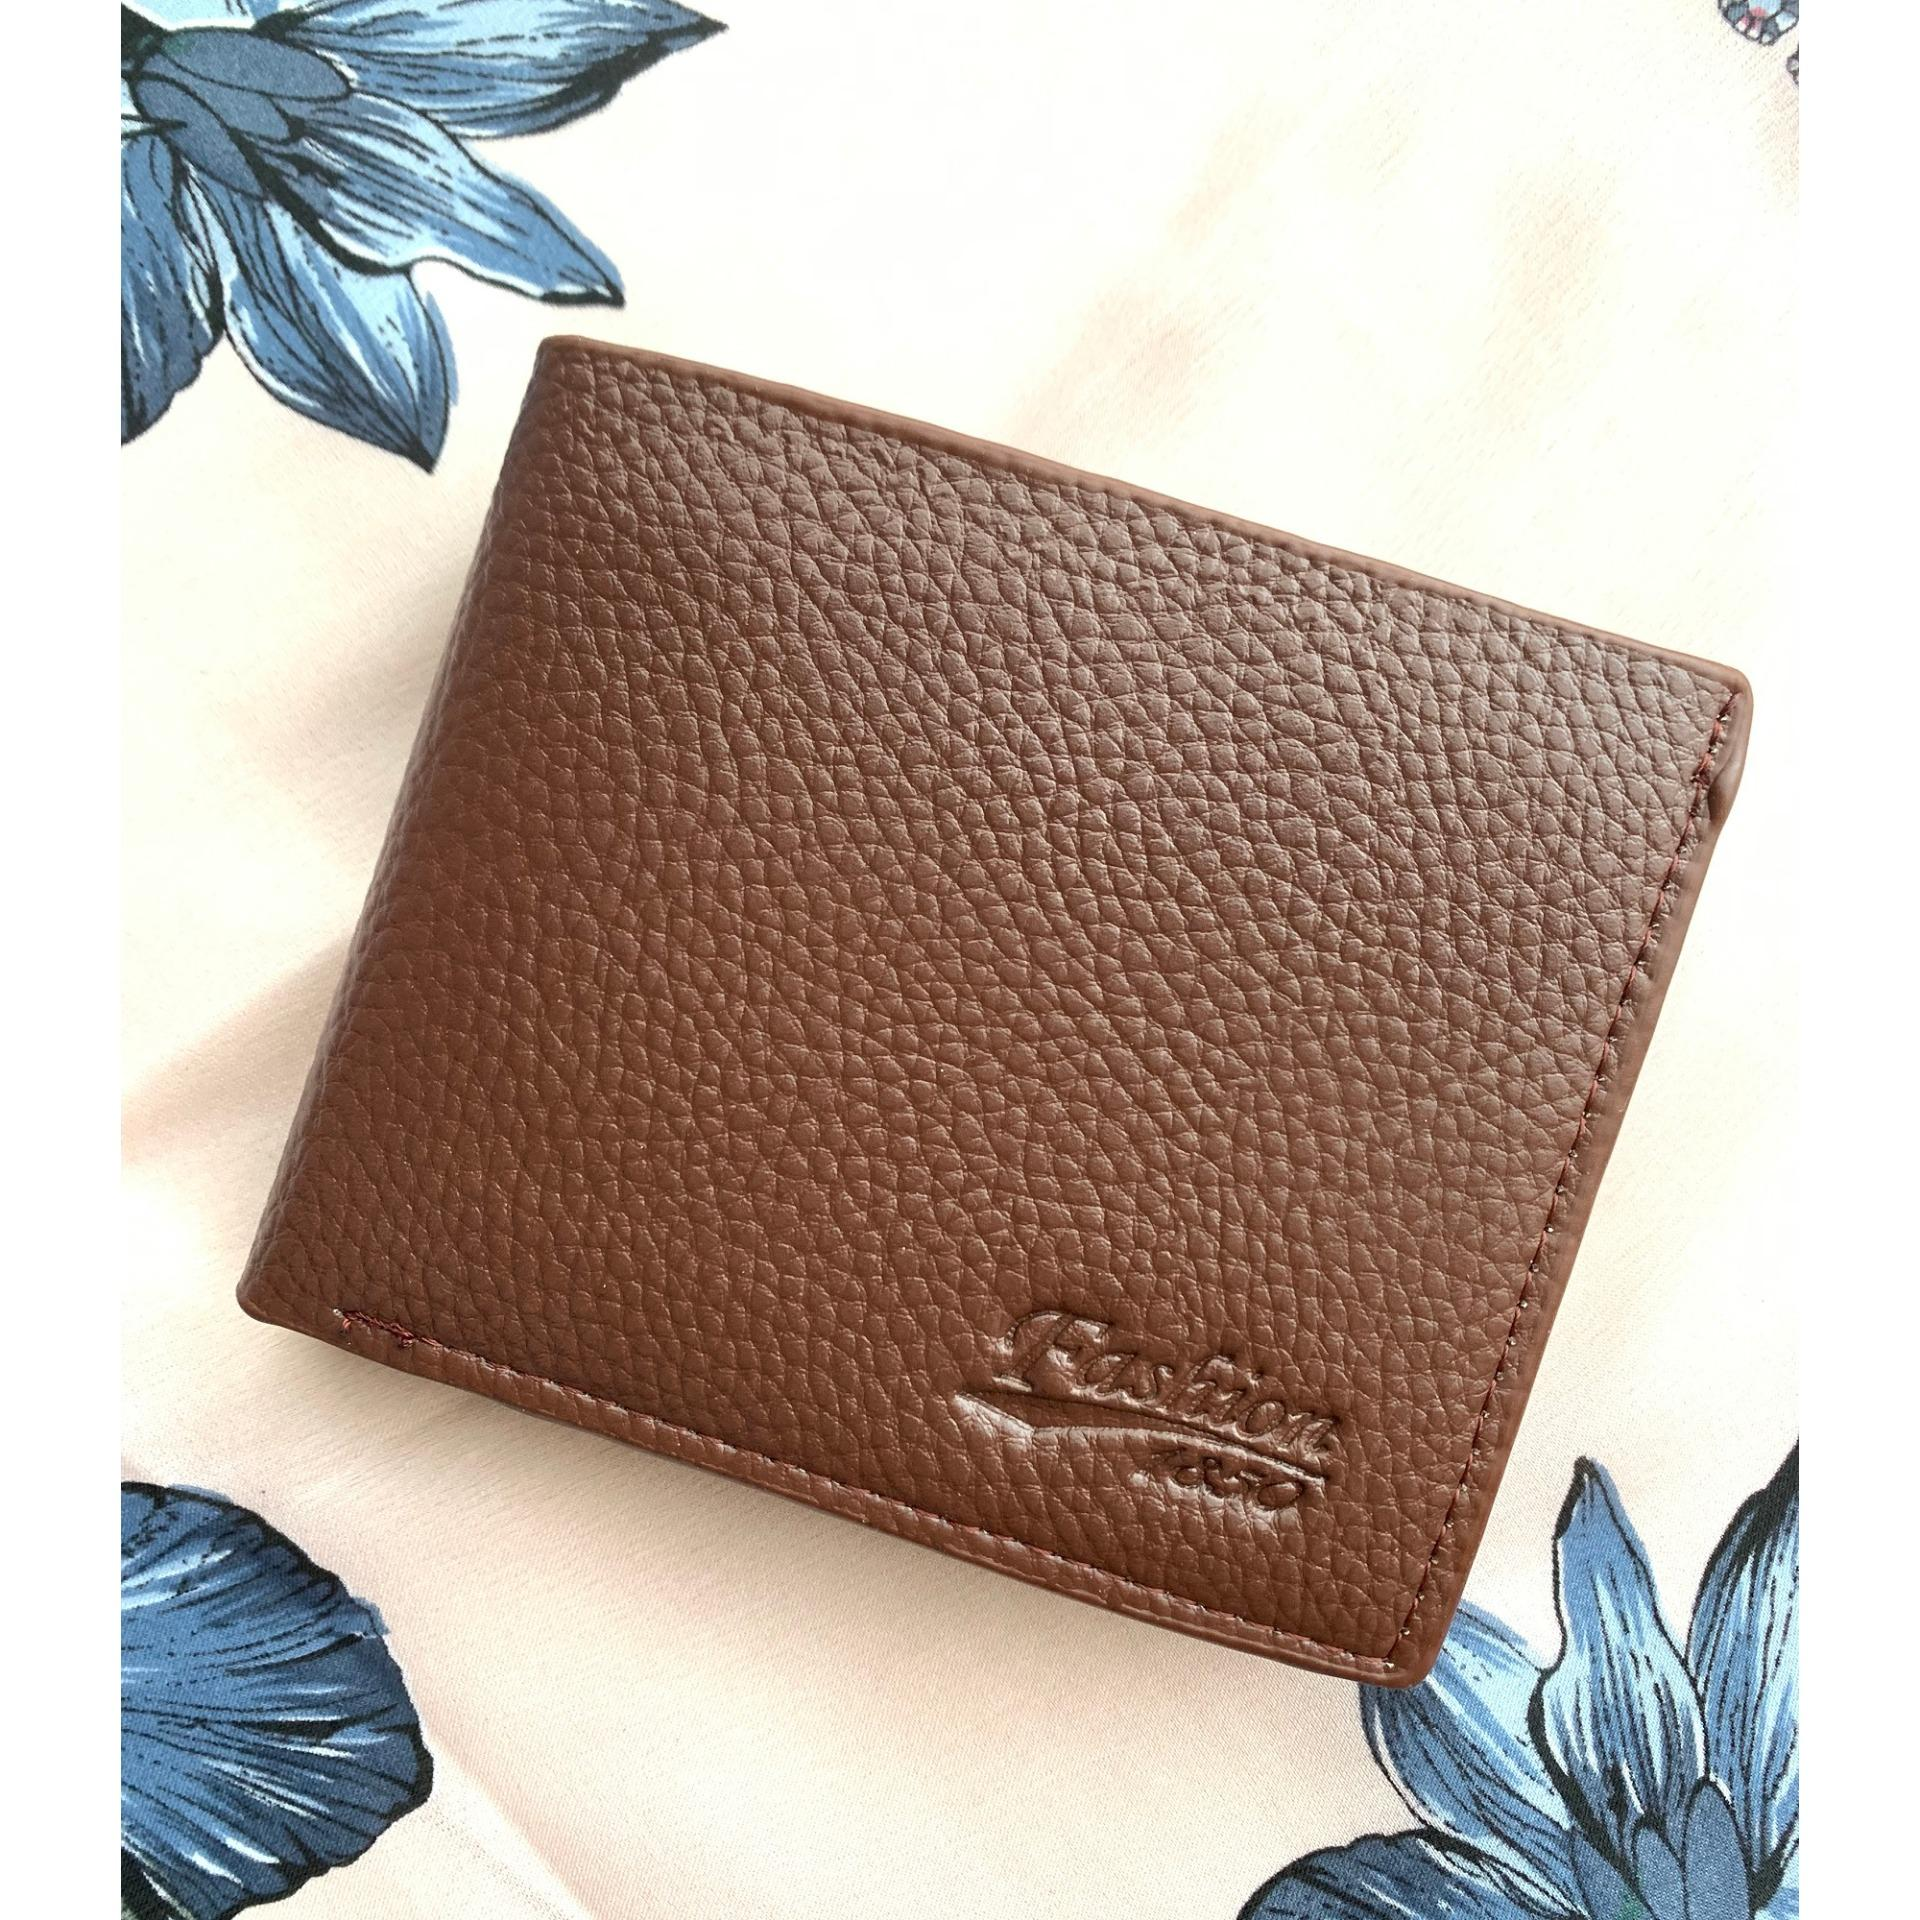 Avery - Fashion Dompet Pria Compact Slim Import Quality With Zipper By Sasaa.